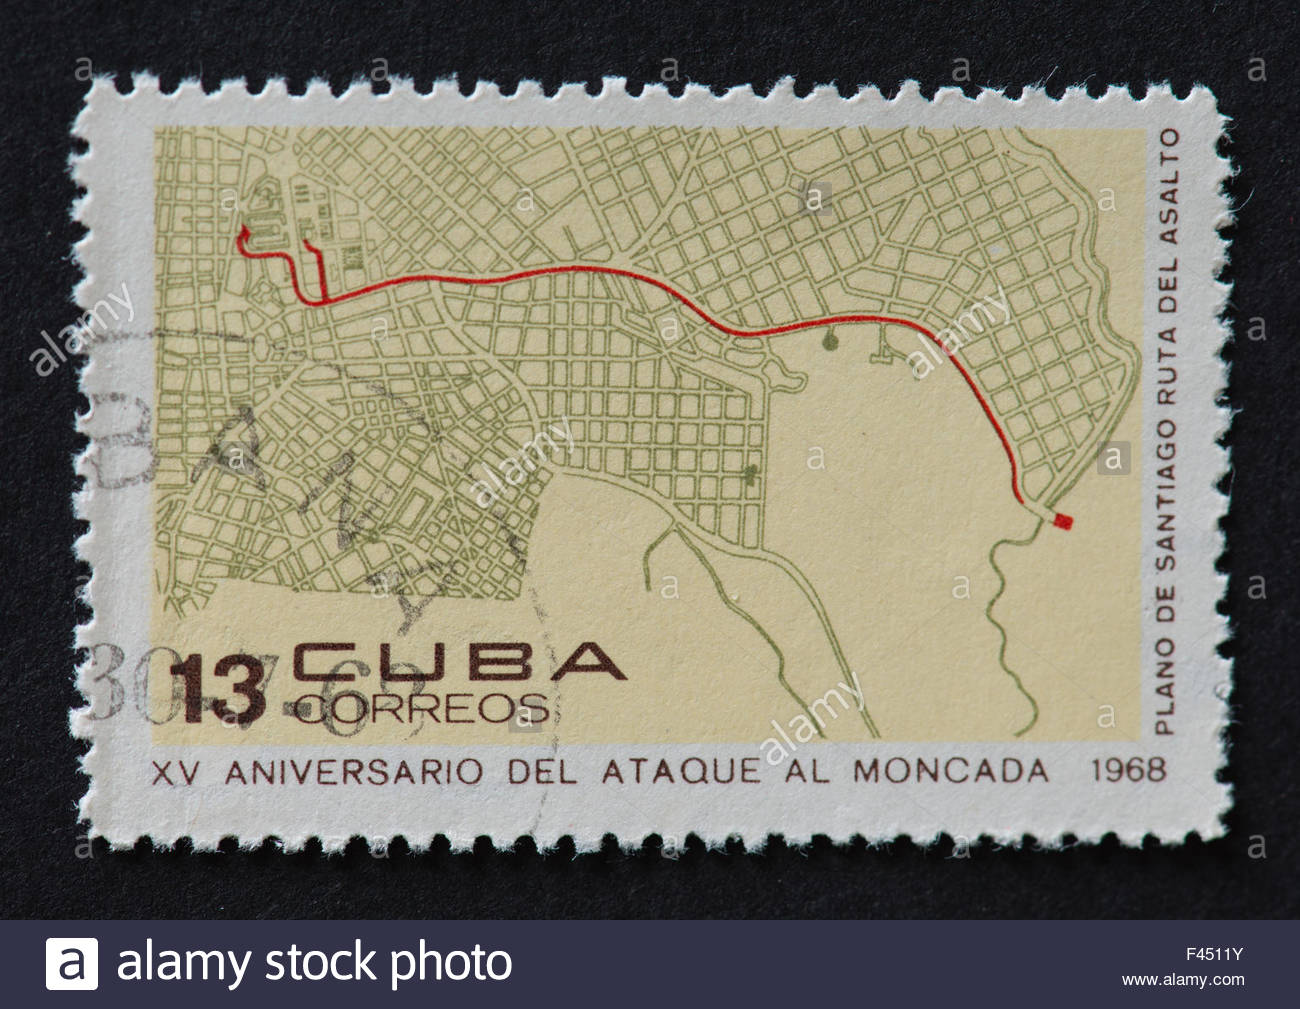 Cuban 1968 stamp commemorating the 15th anniversary of the attack on Moncada. The stamp shows the route map for - Stock Image